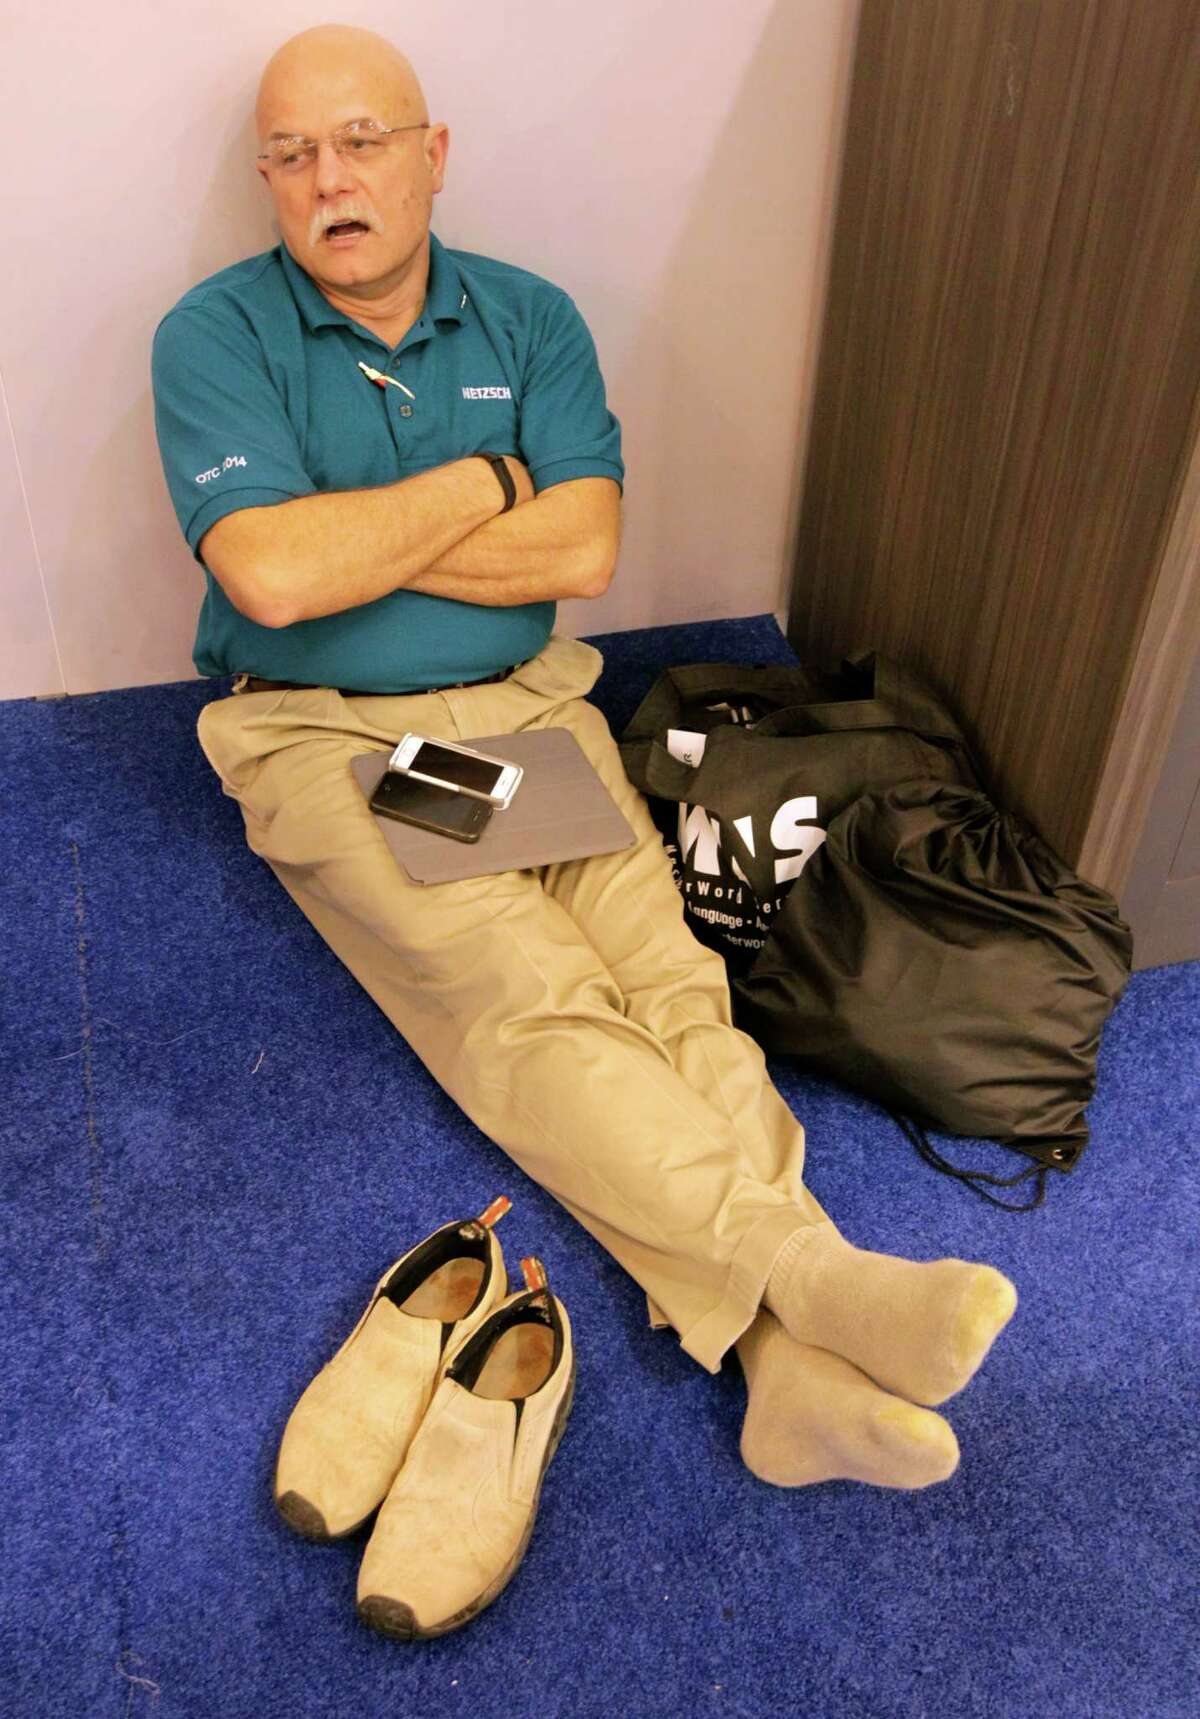 Julio Ferreira with Netzsch Pumps North America takes a moment Thursday to get off his feet at the conclusion of the Offshore Technology Conference at NRG Park.